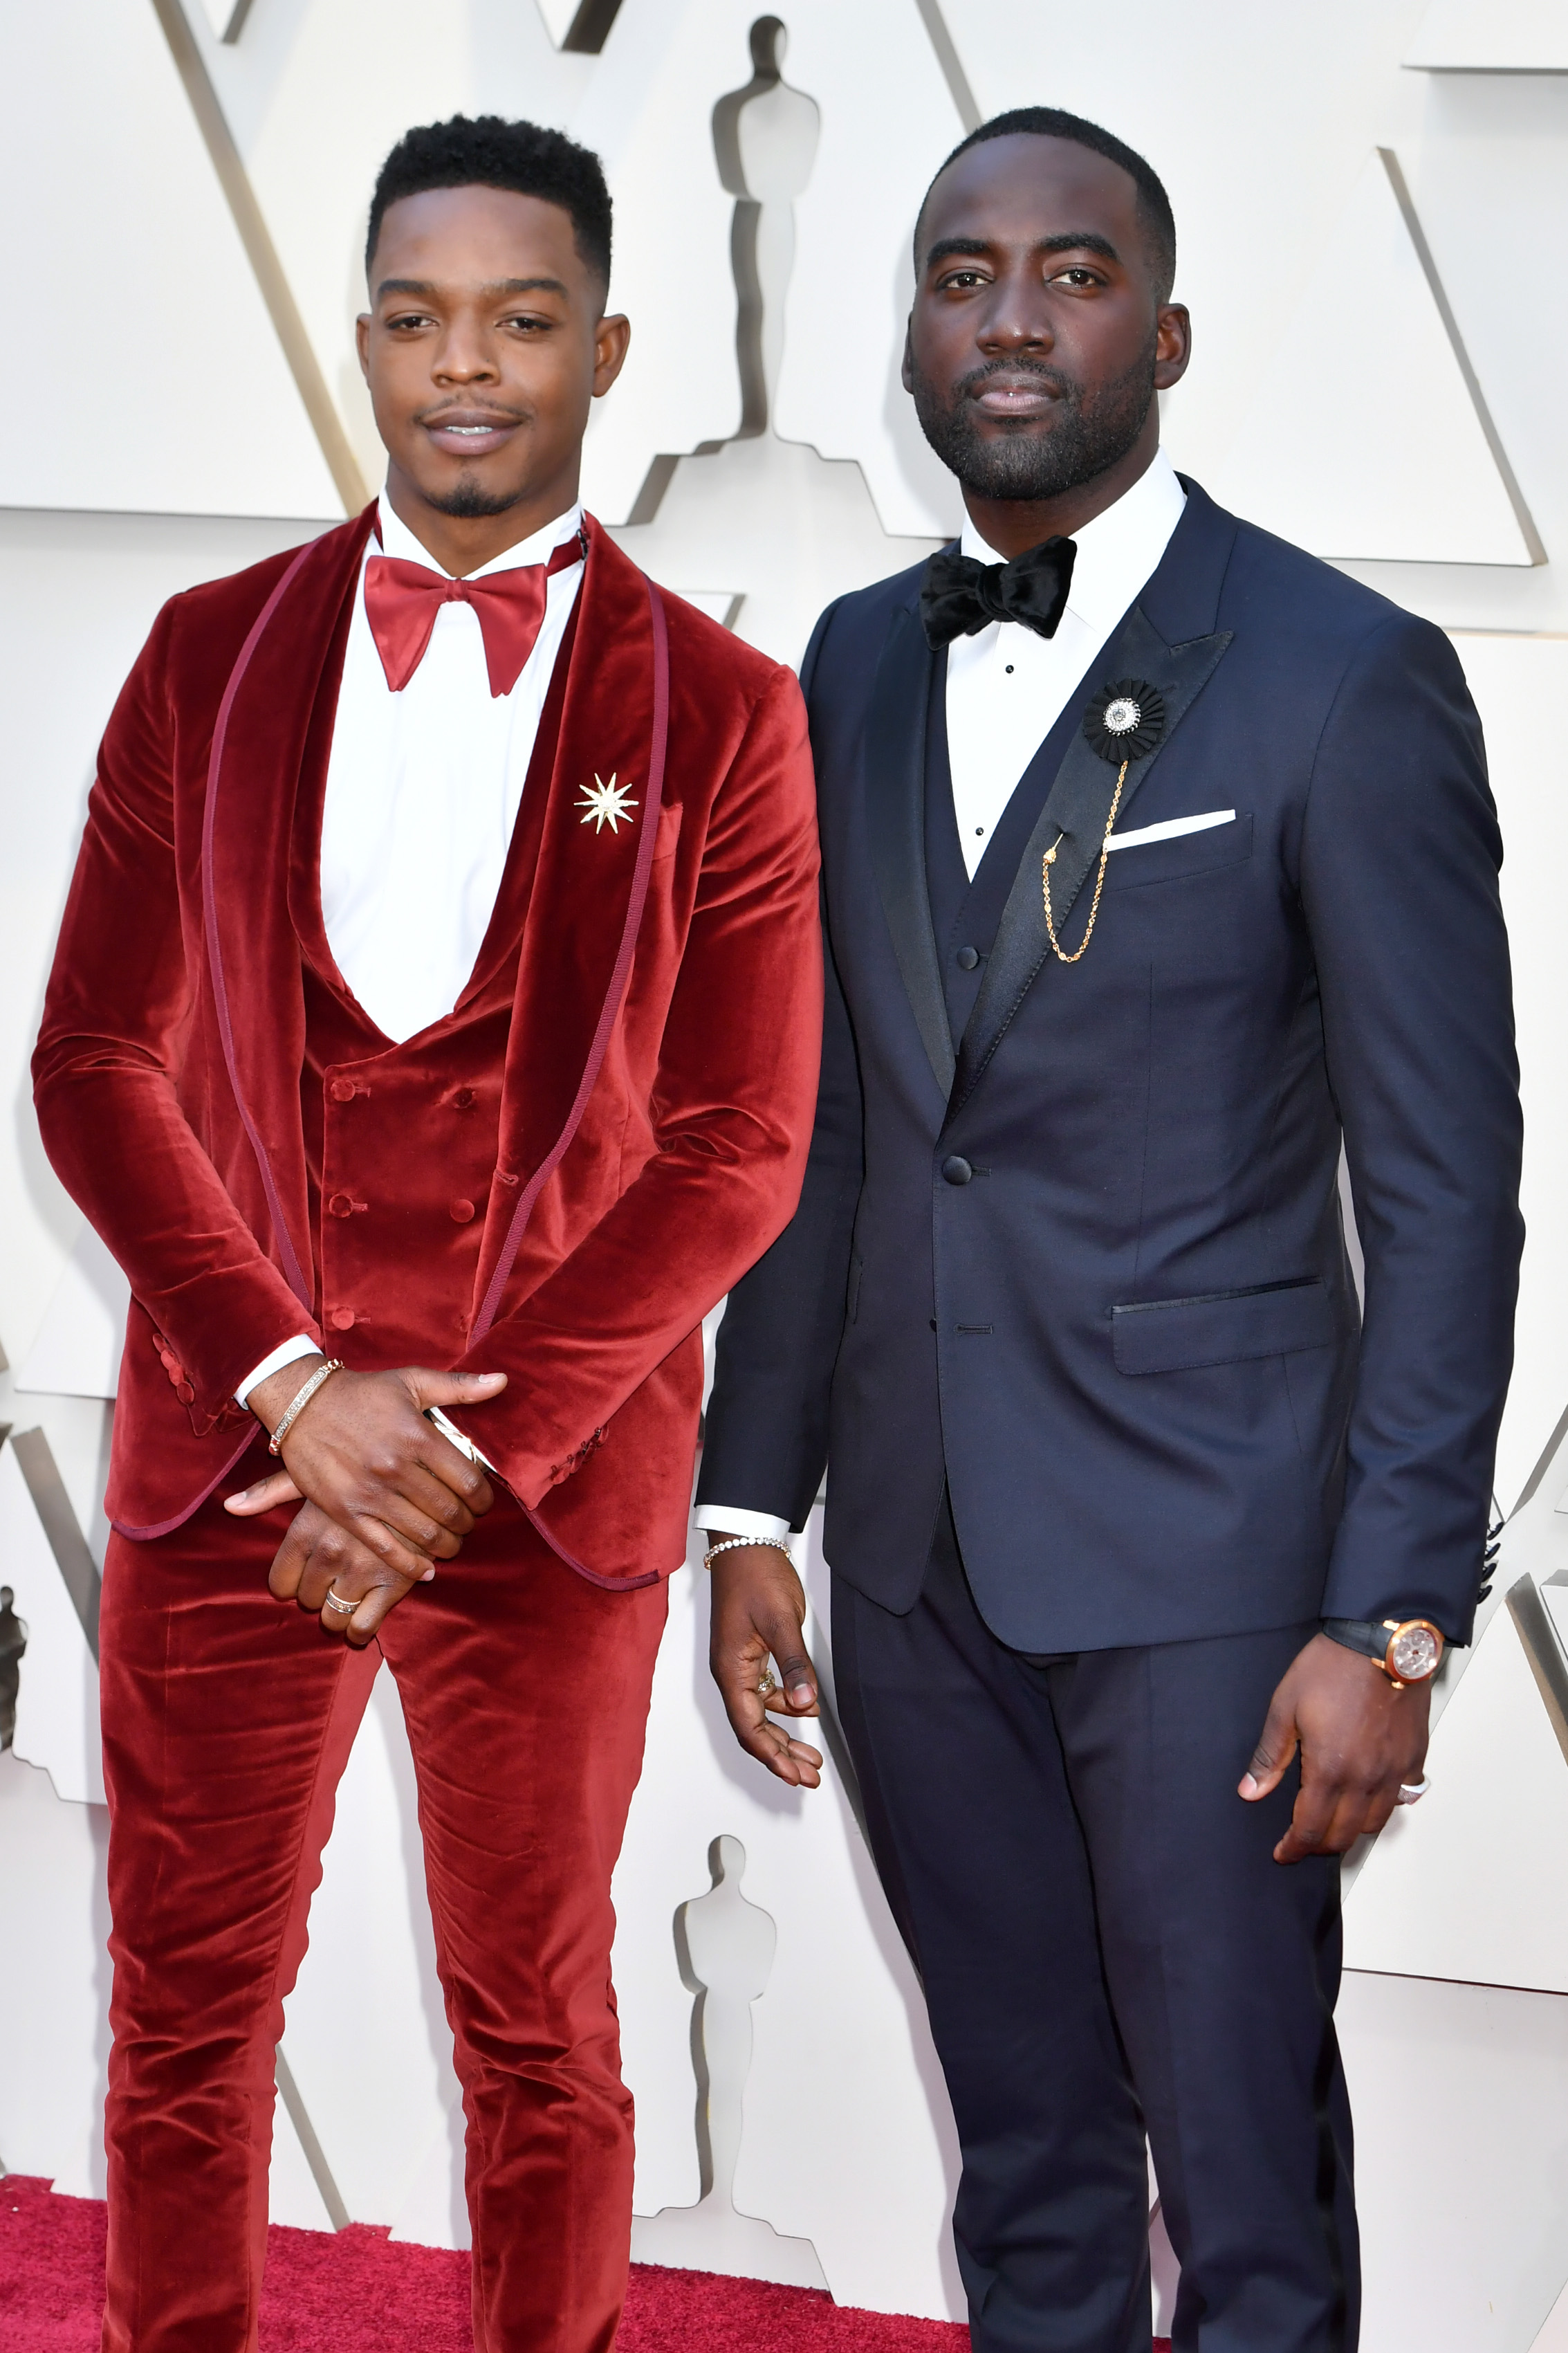 91st OSCARS RED CARPET 2019 STEPHAN JAMES AND SHAMIER ANDERSON.jpg